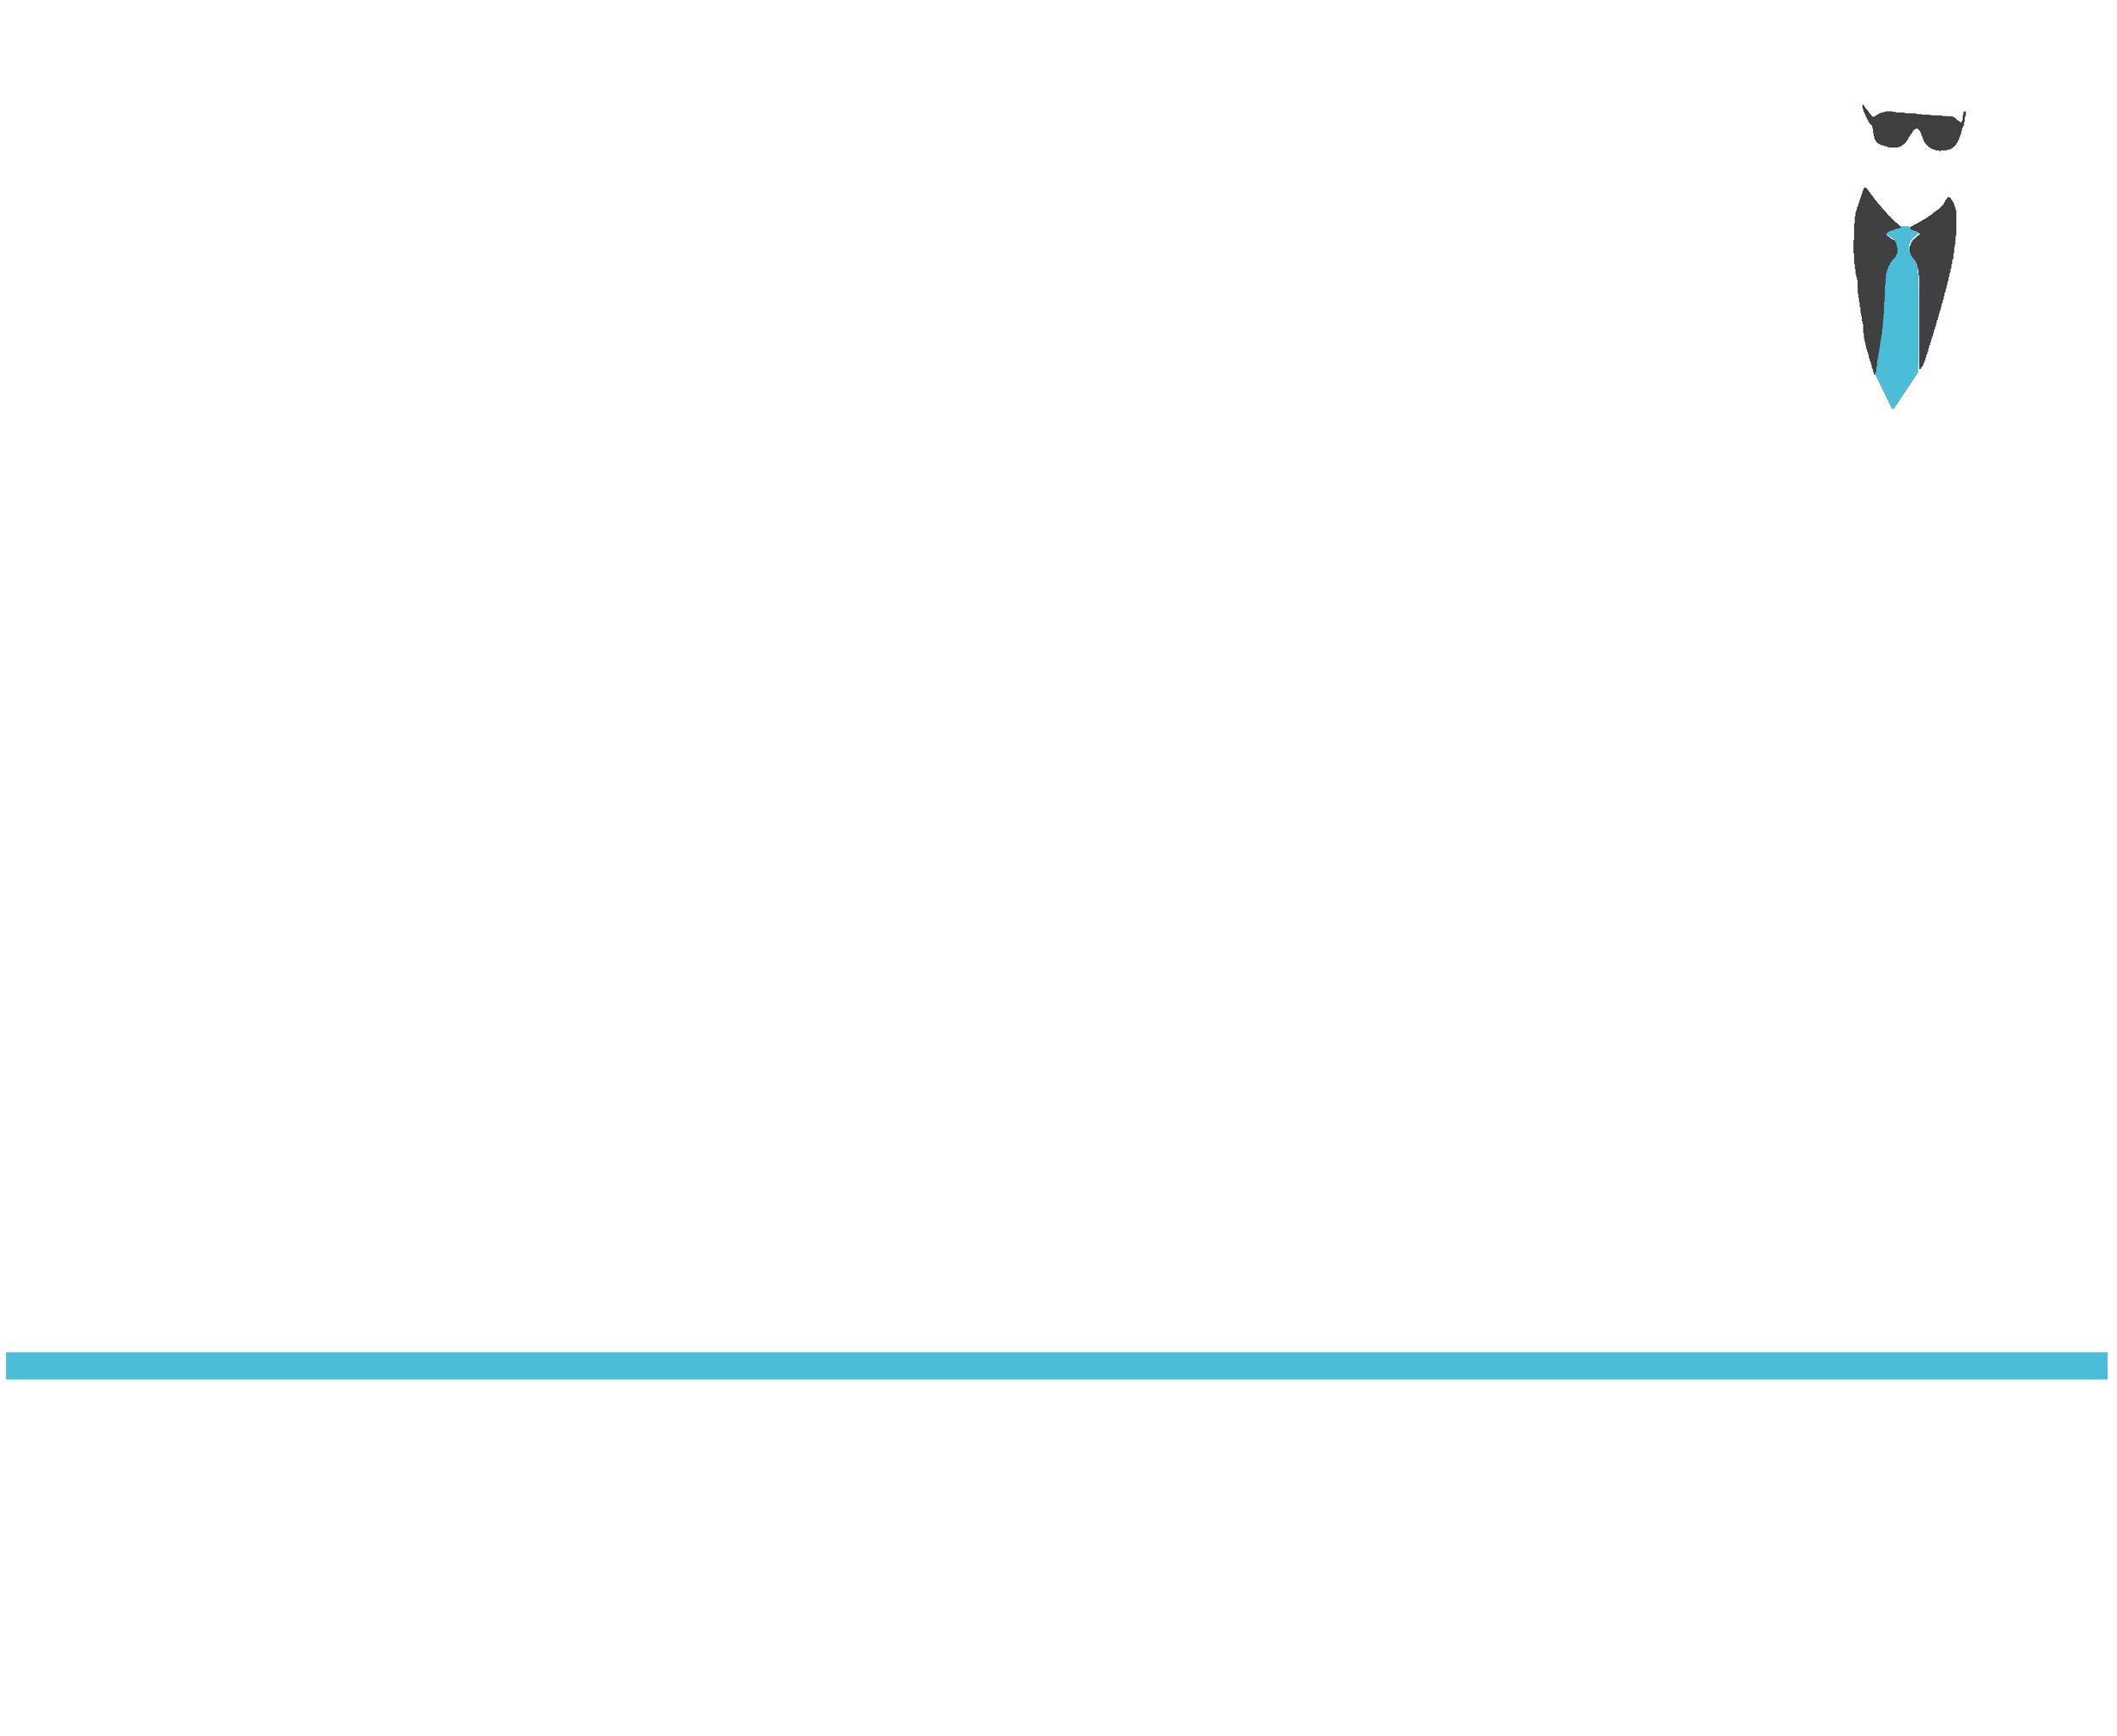 Texas Fashion Industry Initiative